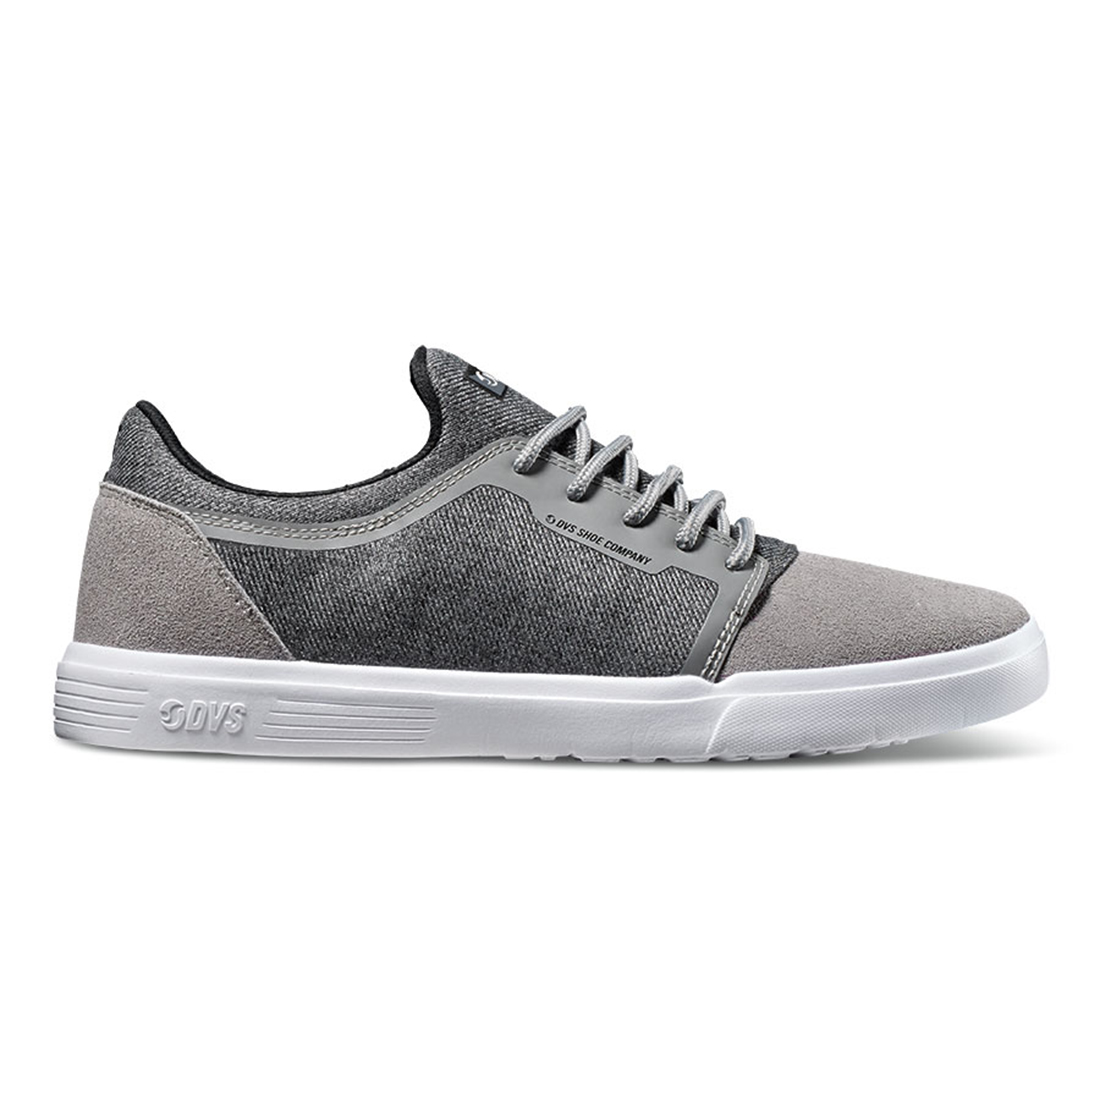 DVS Mens Stratos LT+ Economical, stylish, and eye-catching shoes